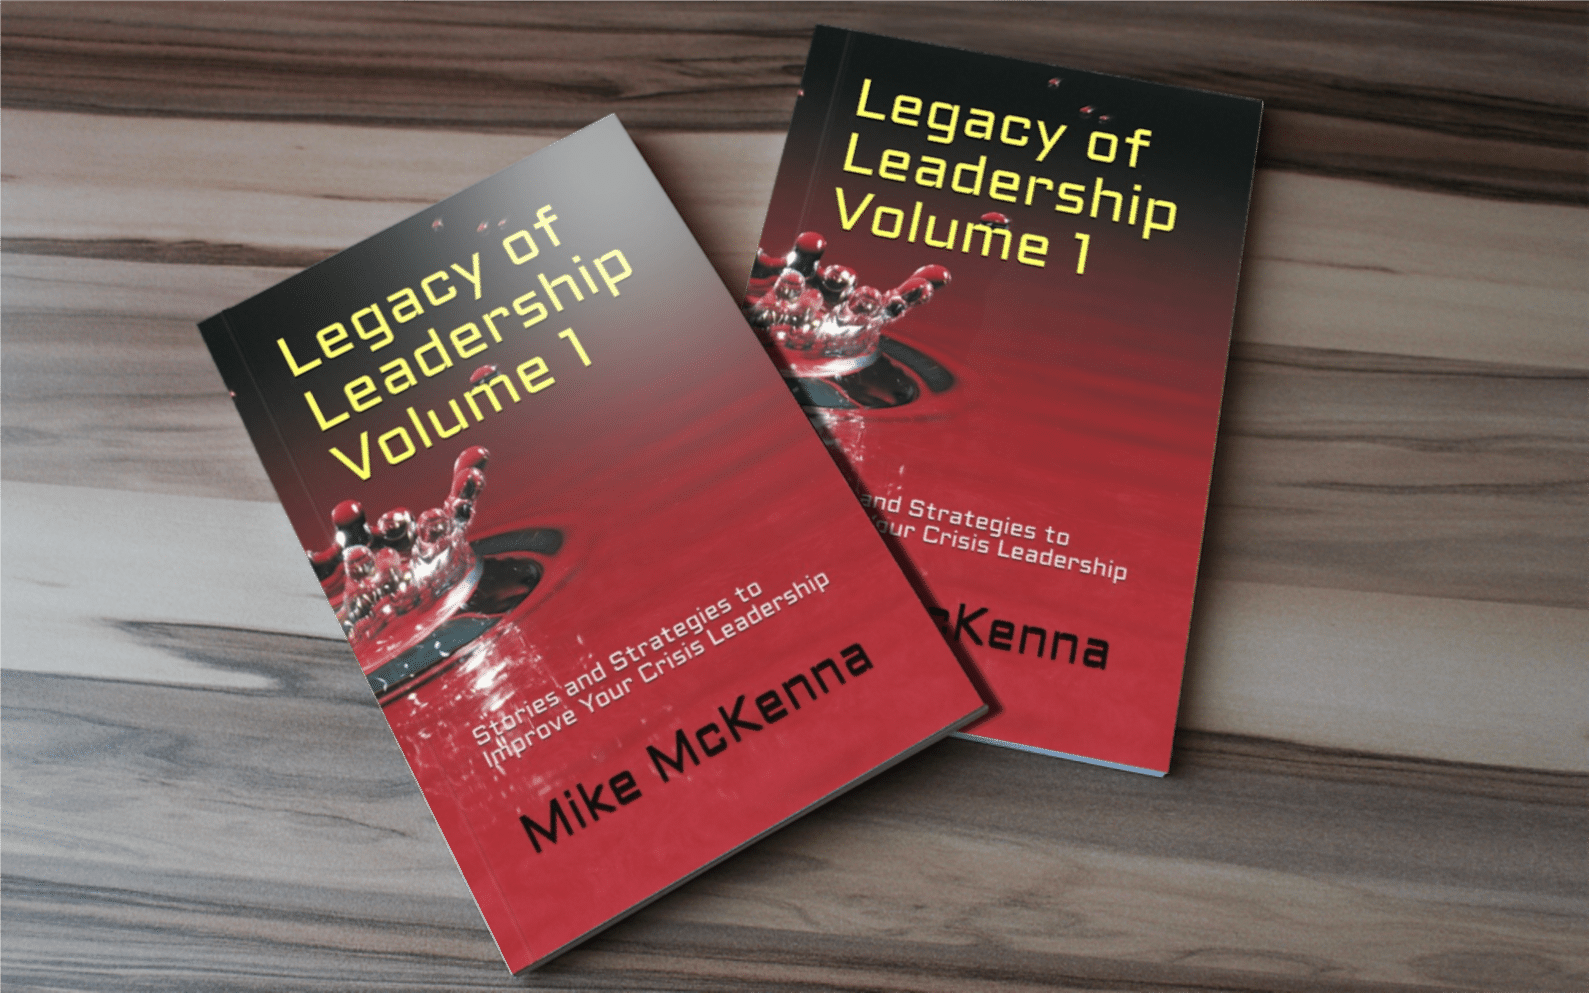 Legacy of Leadership 3D Cover_Multiple